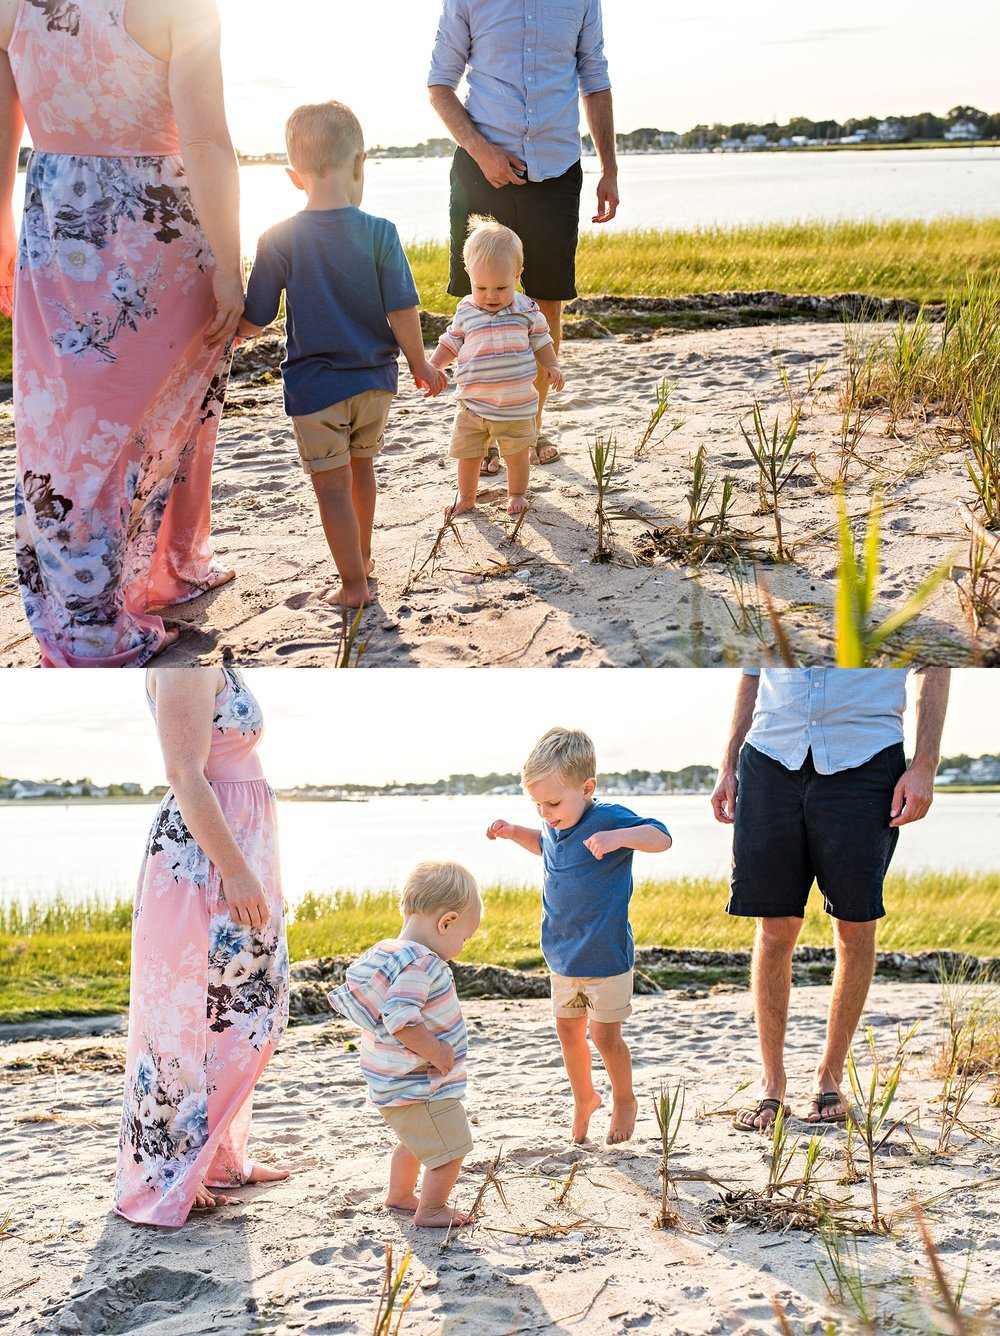 ct beach photography. family photography at the beach